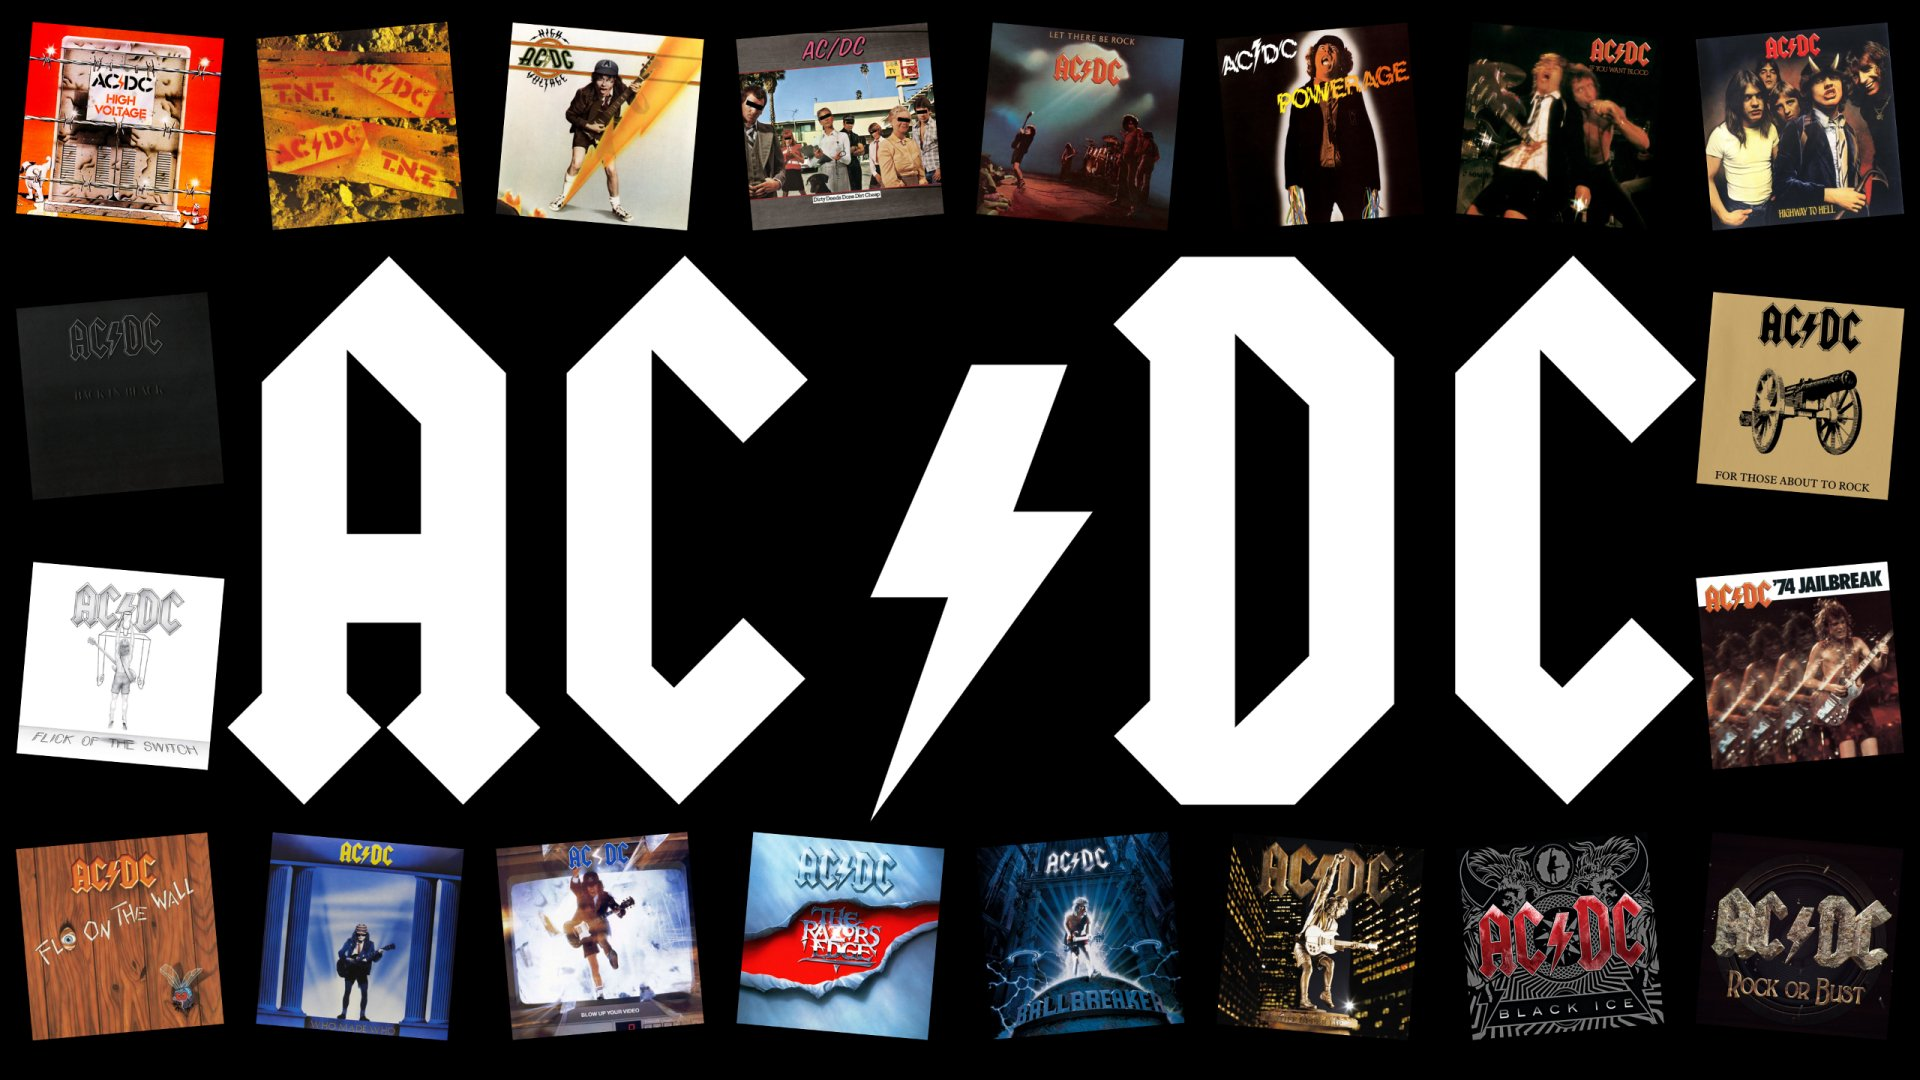 Ac dc albums hd wallpaper background image 2560x1440 - Ac dc wallpaper for android ...